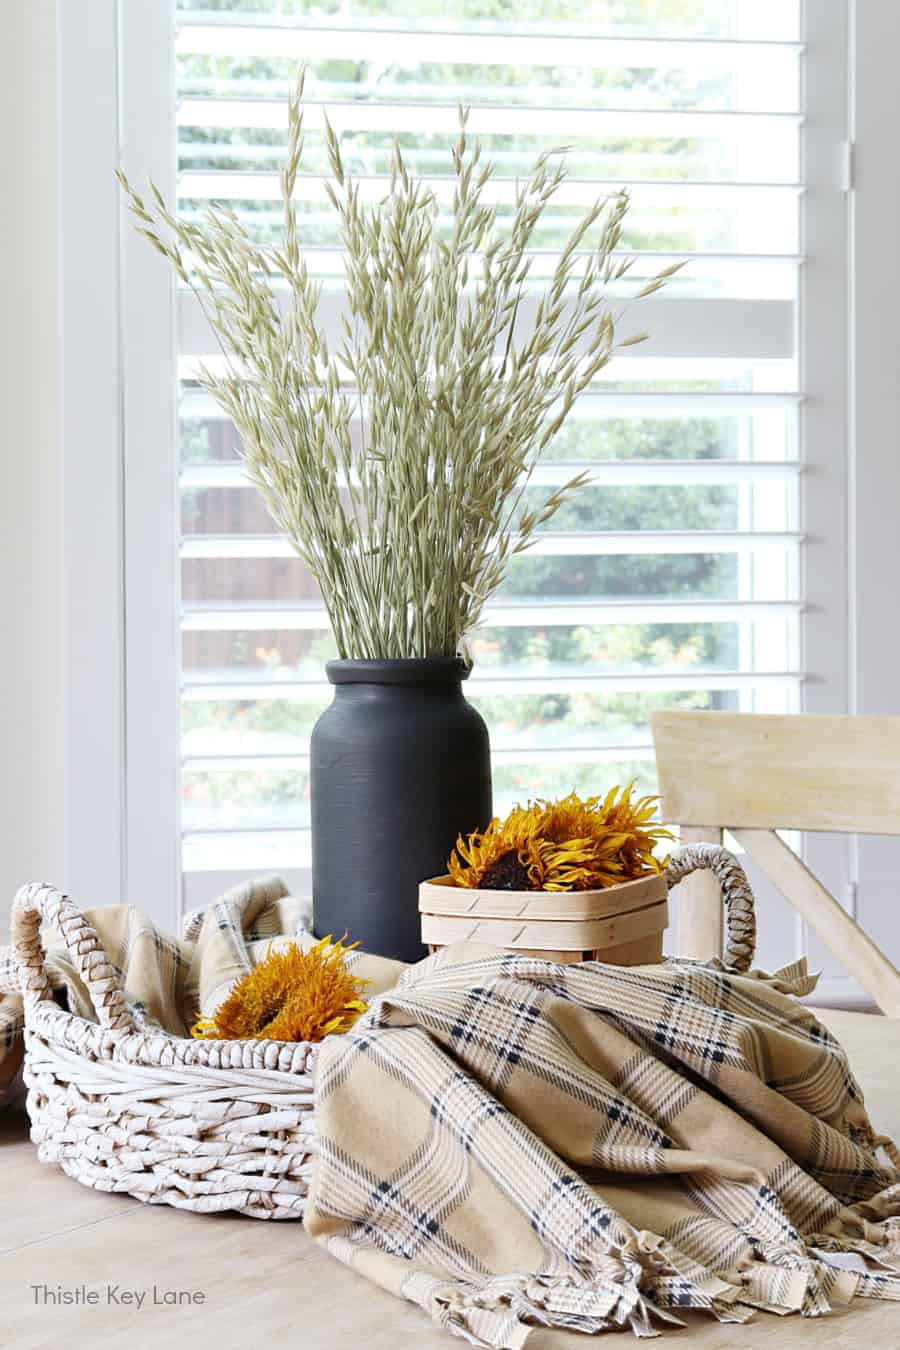 Round tray with plaid throw, dried grass in black vase, sunflowers in a basket. How To Make A Plaid Table Throw.